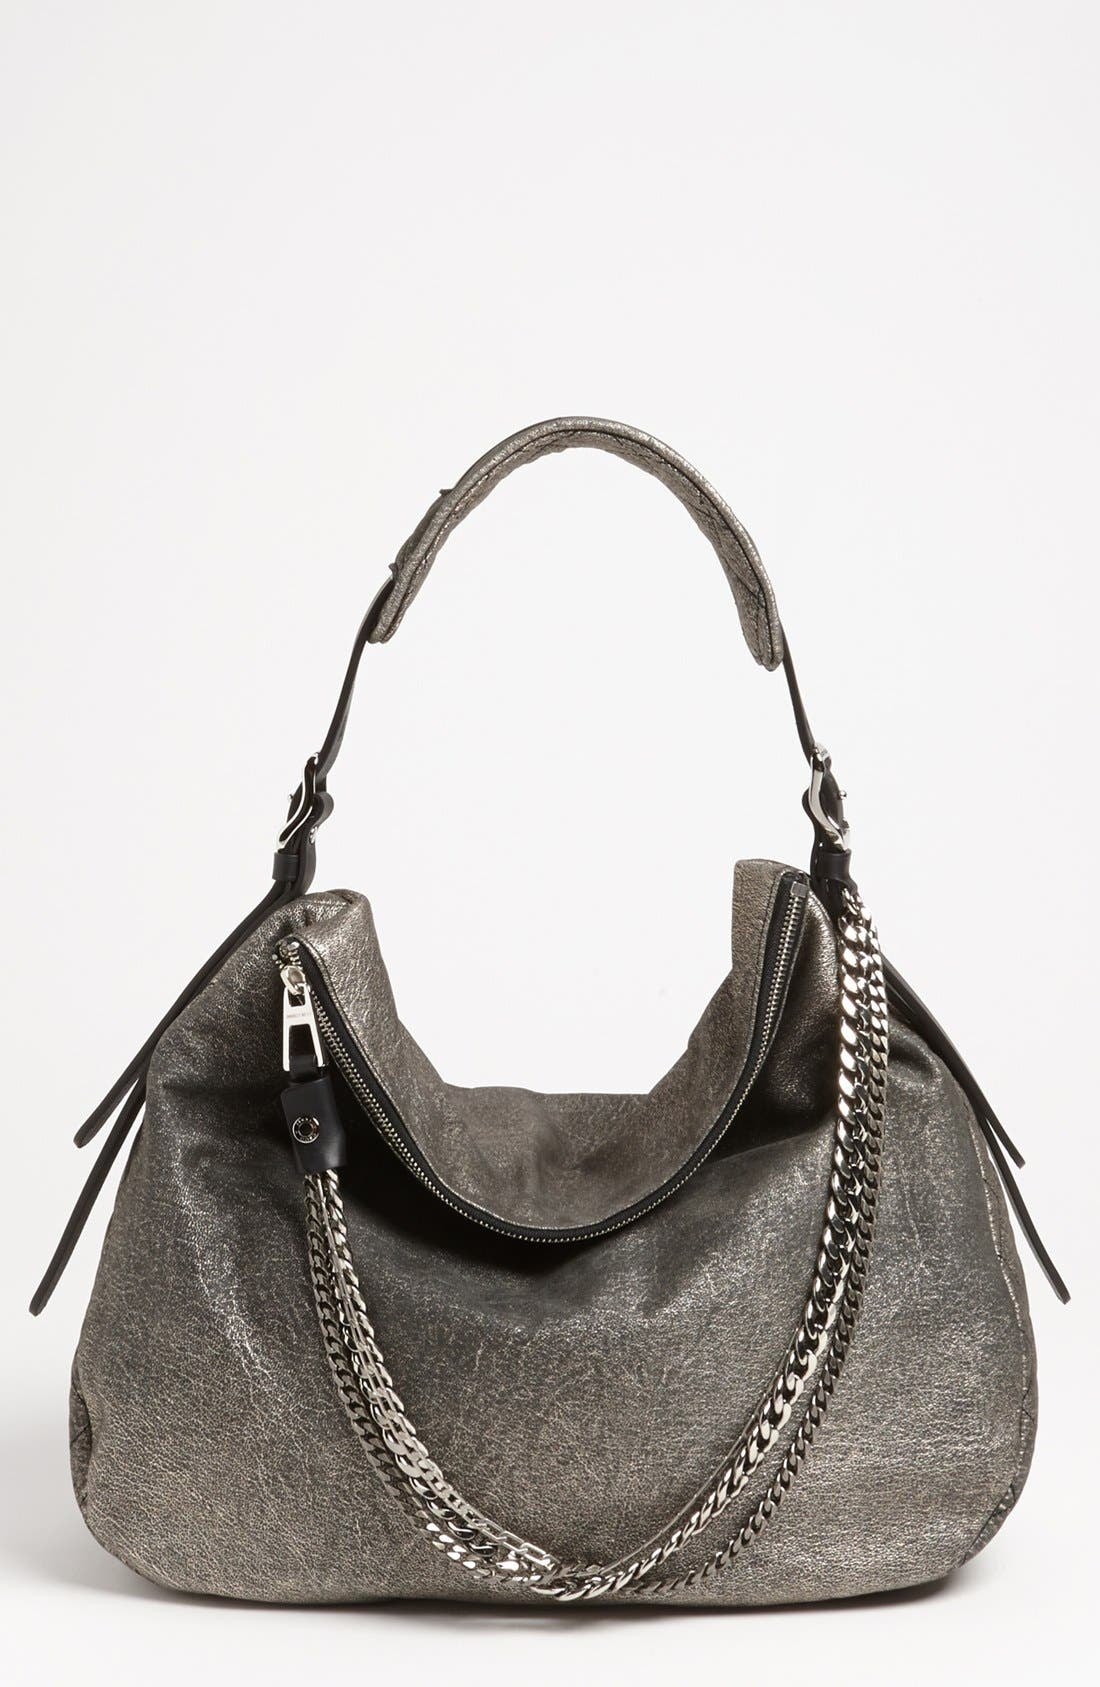 Main Image - Jimmy Choo 'Large Boho' Metallic Suede Hobo